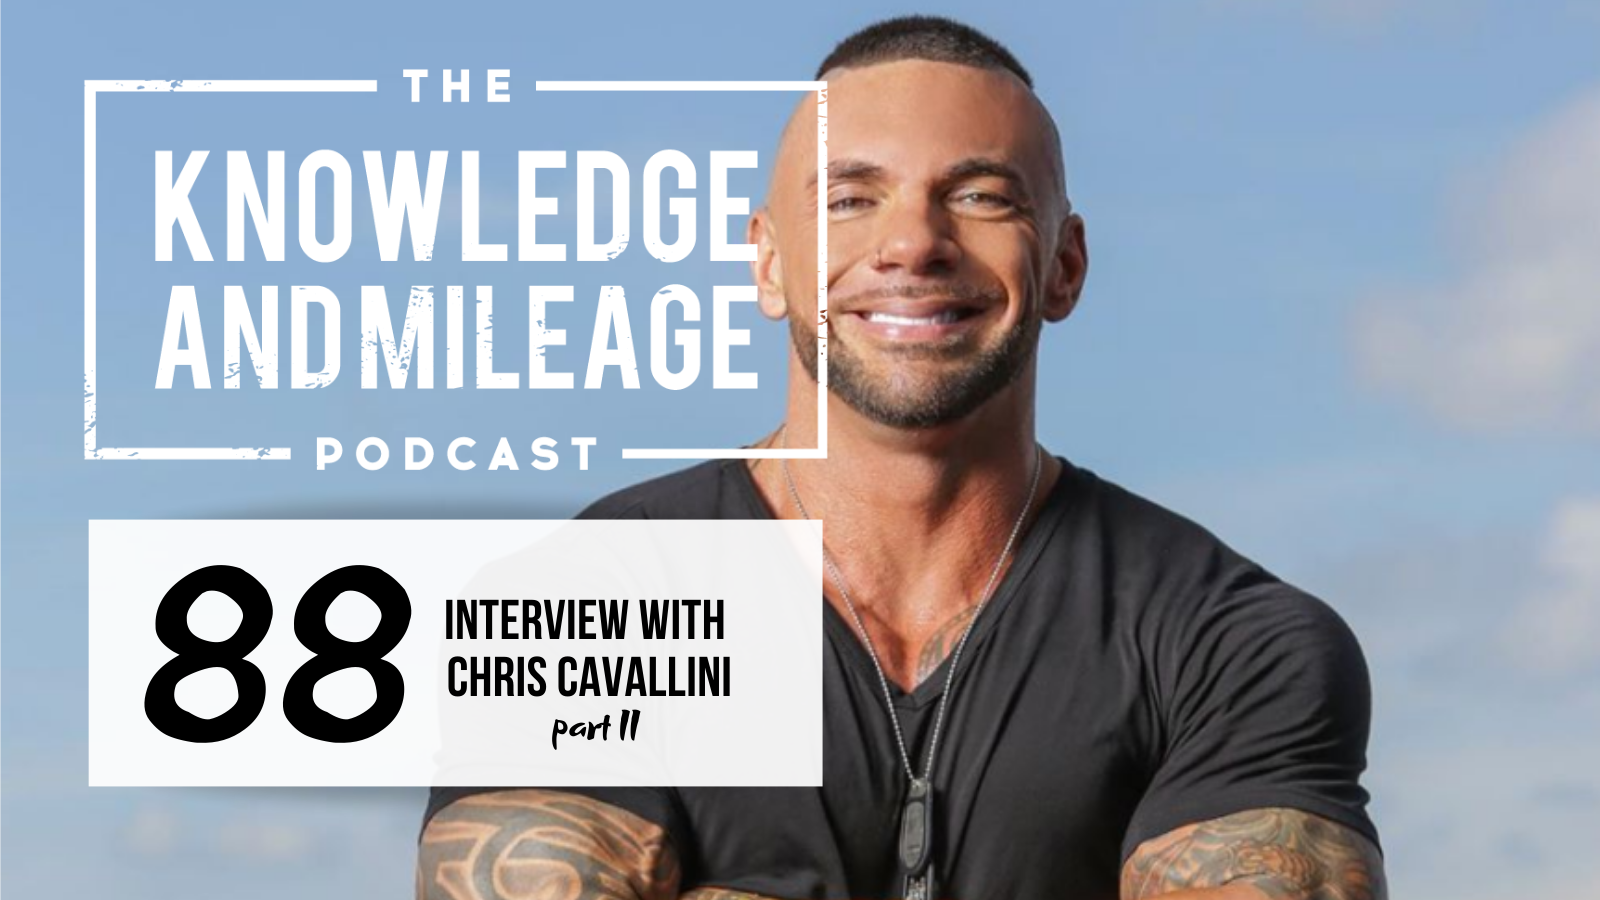 EP 88: Drug Dealer to Millionaire - Spitting in the Face of Adversity with Chris Cavallini